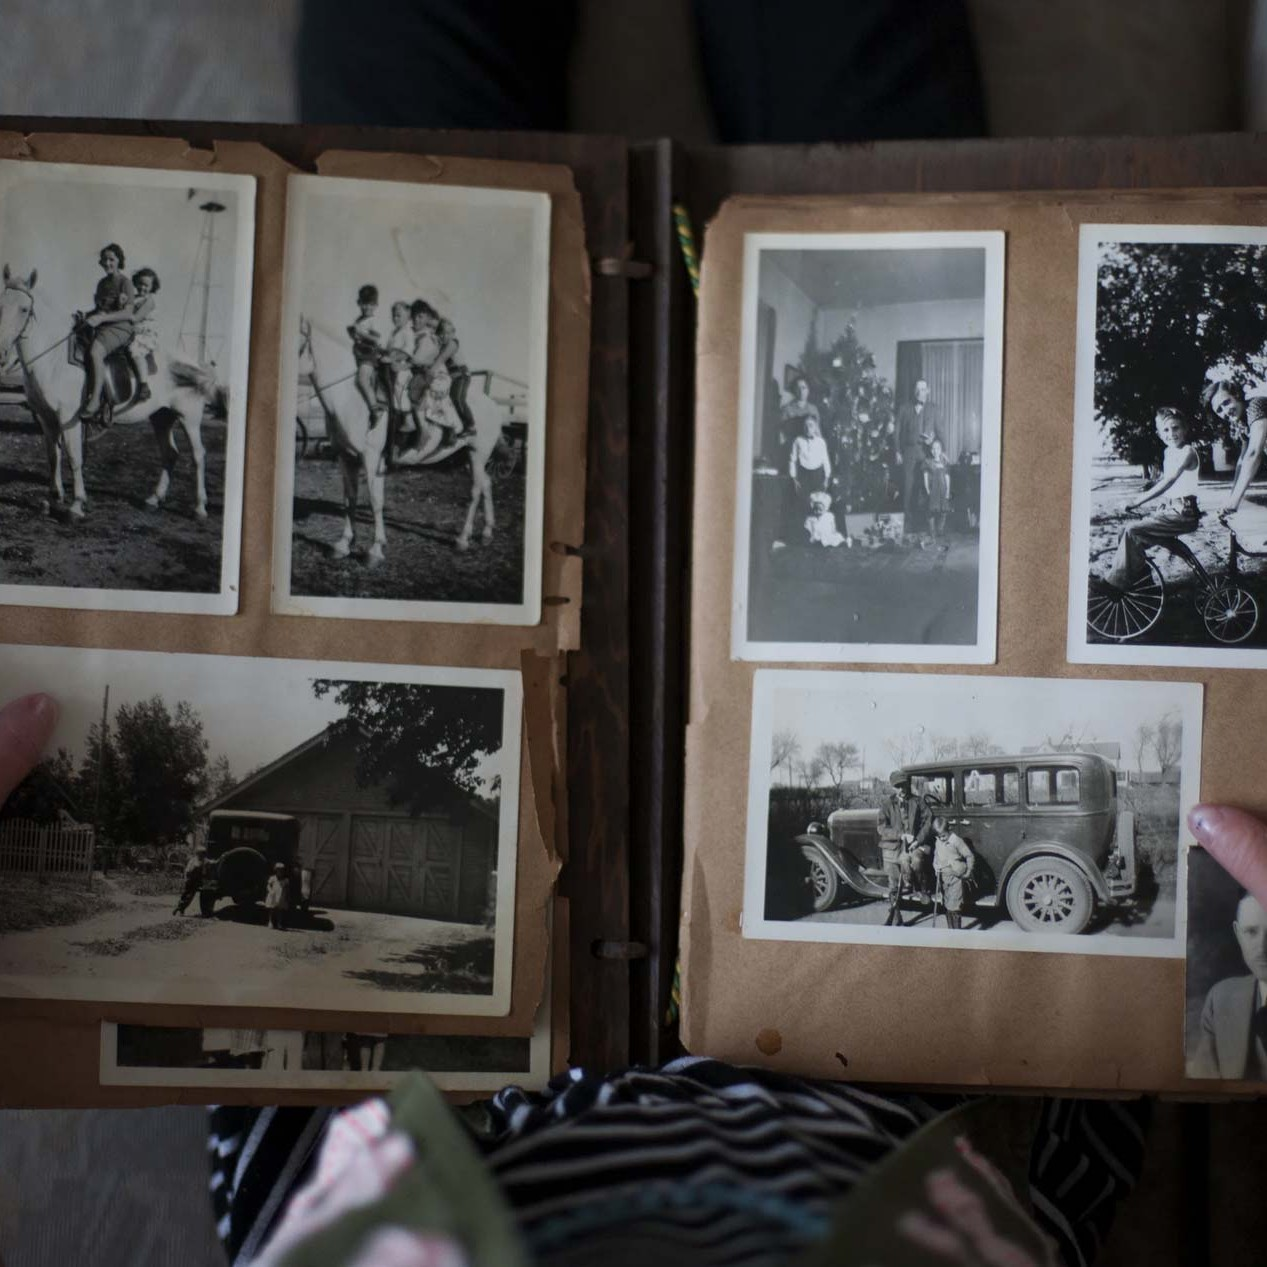 Family Legacies and Expectations